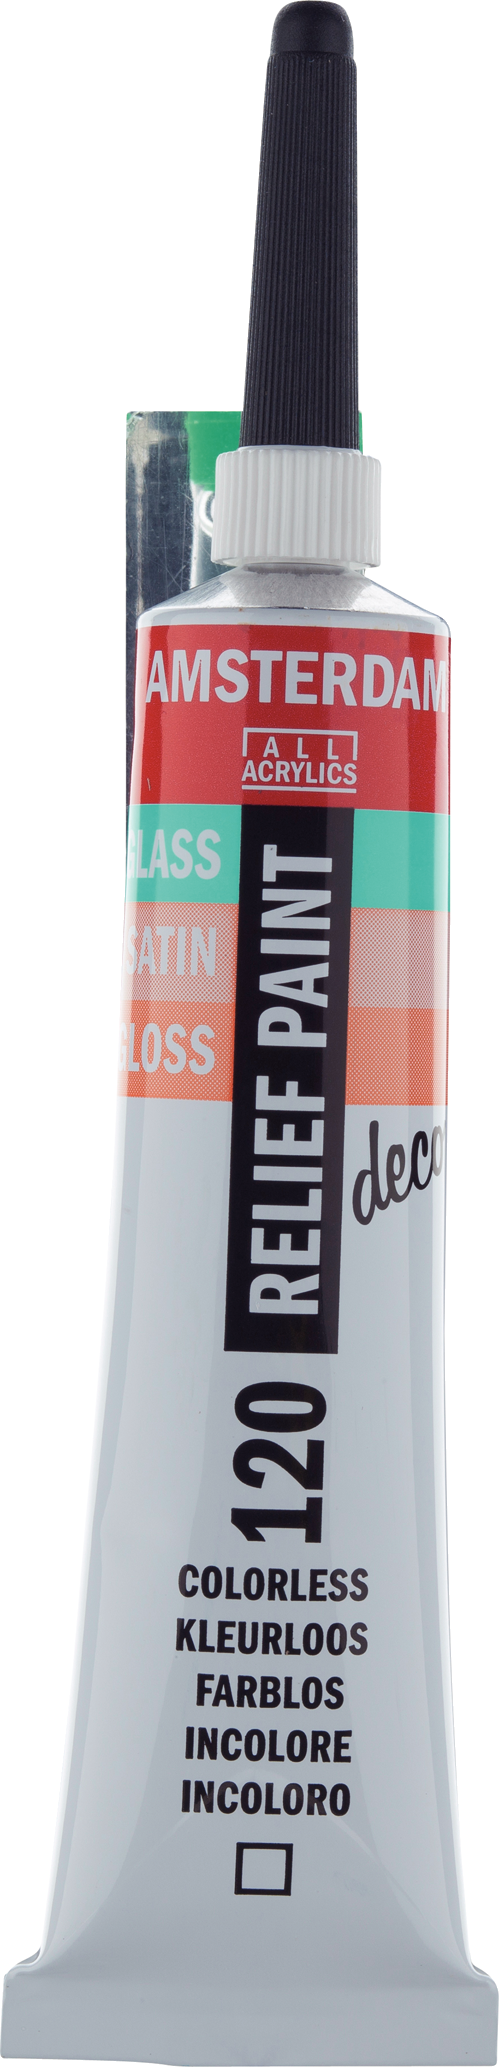 Amsterdam Contour Paint Tube 20 ml